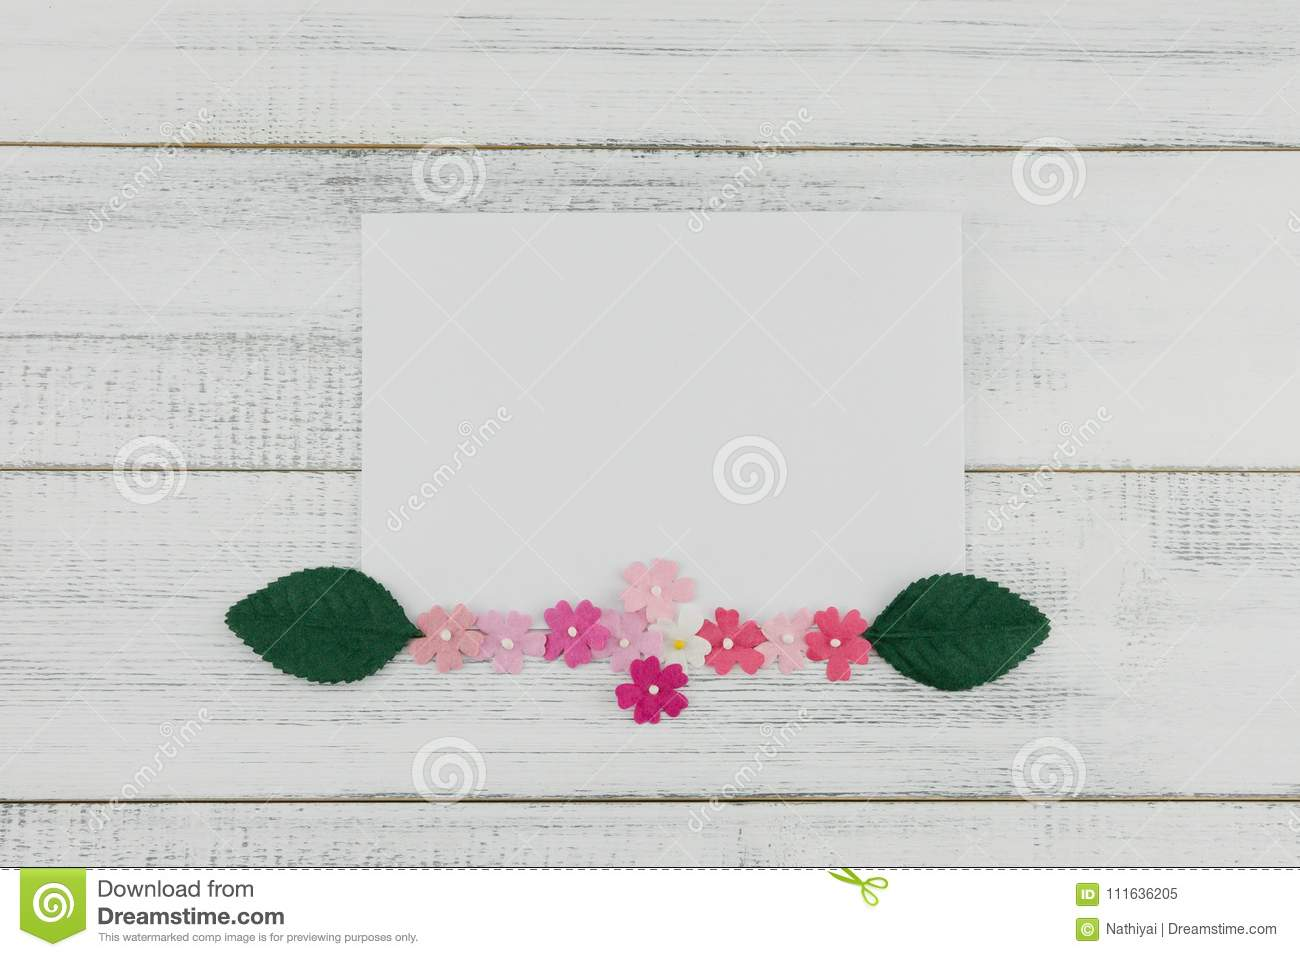 f28e06b919d Blank White Card Decorate With Pink Paper Flowers And Green Leaves ...